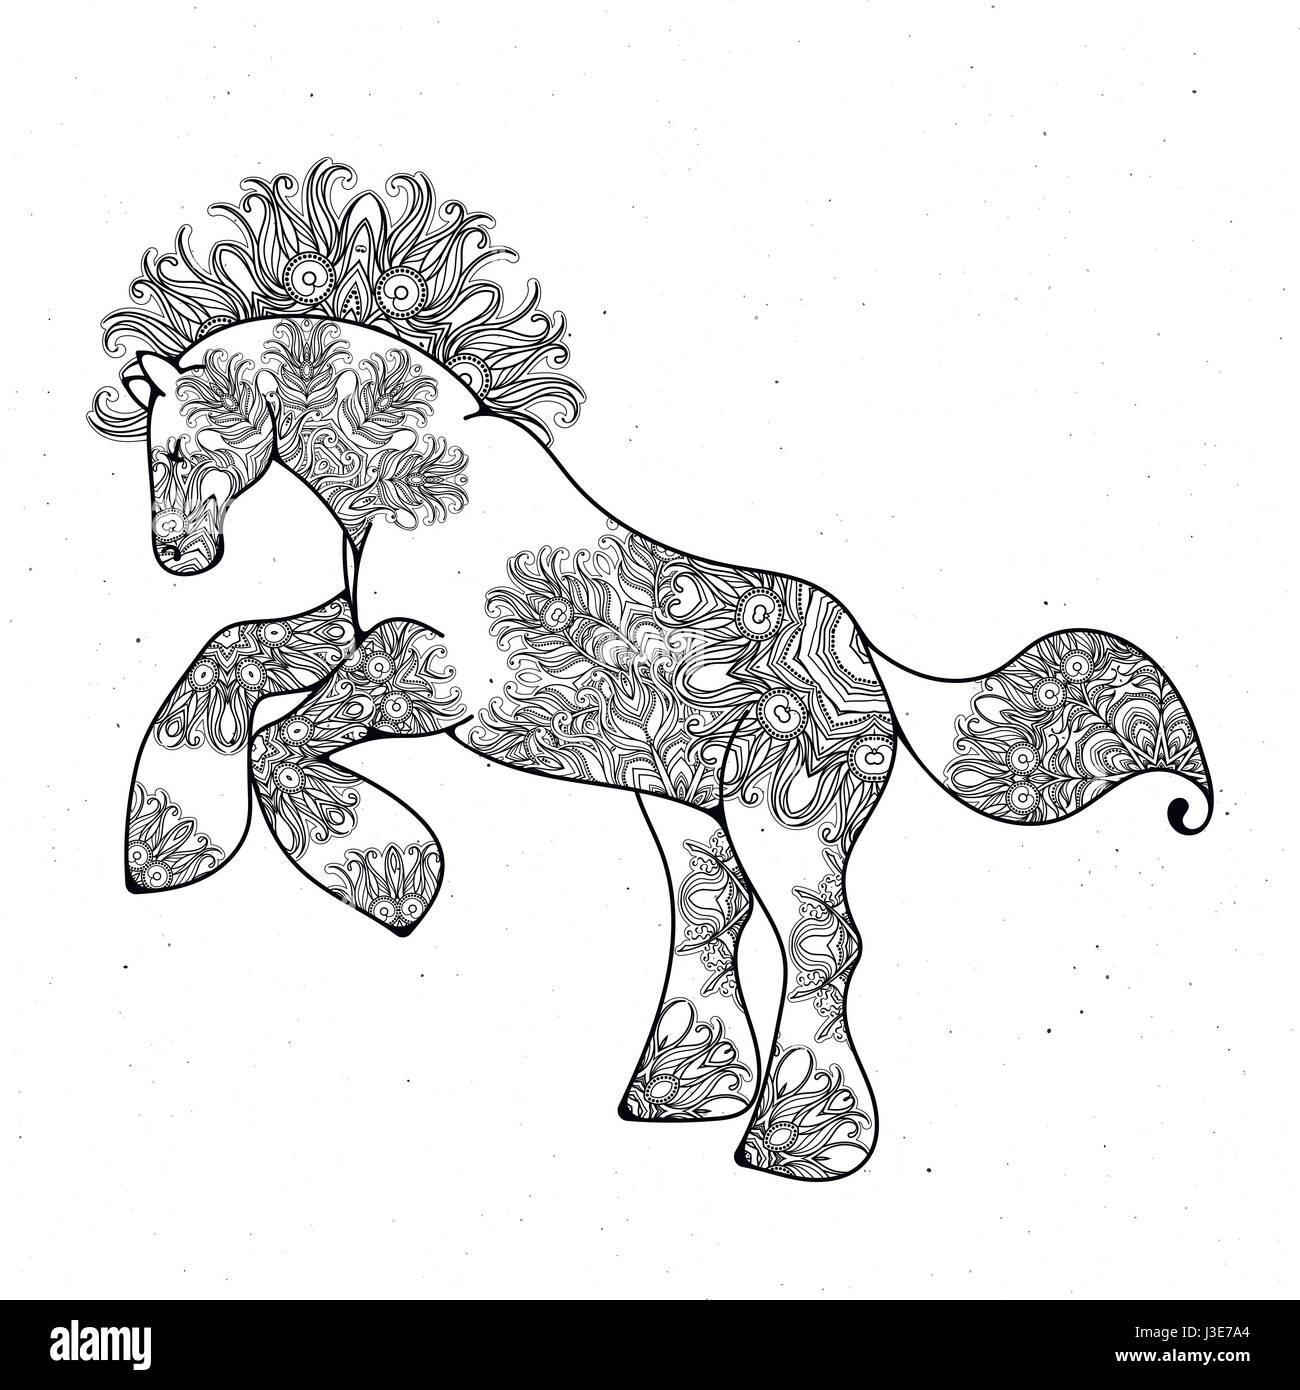 Antistress Linear Page With Horse Zentangle Animal For Colouring Book Greeting Card Mandala Decoration Element Art Therapy